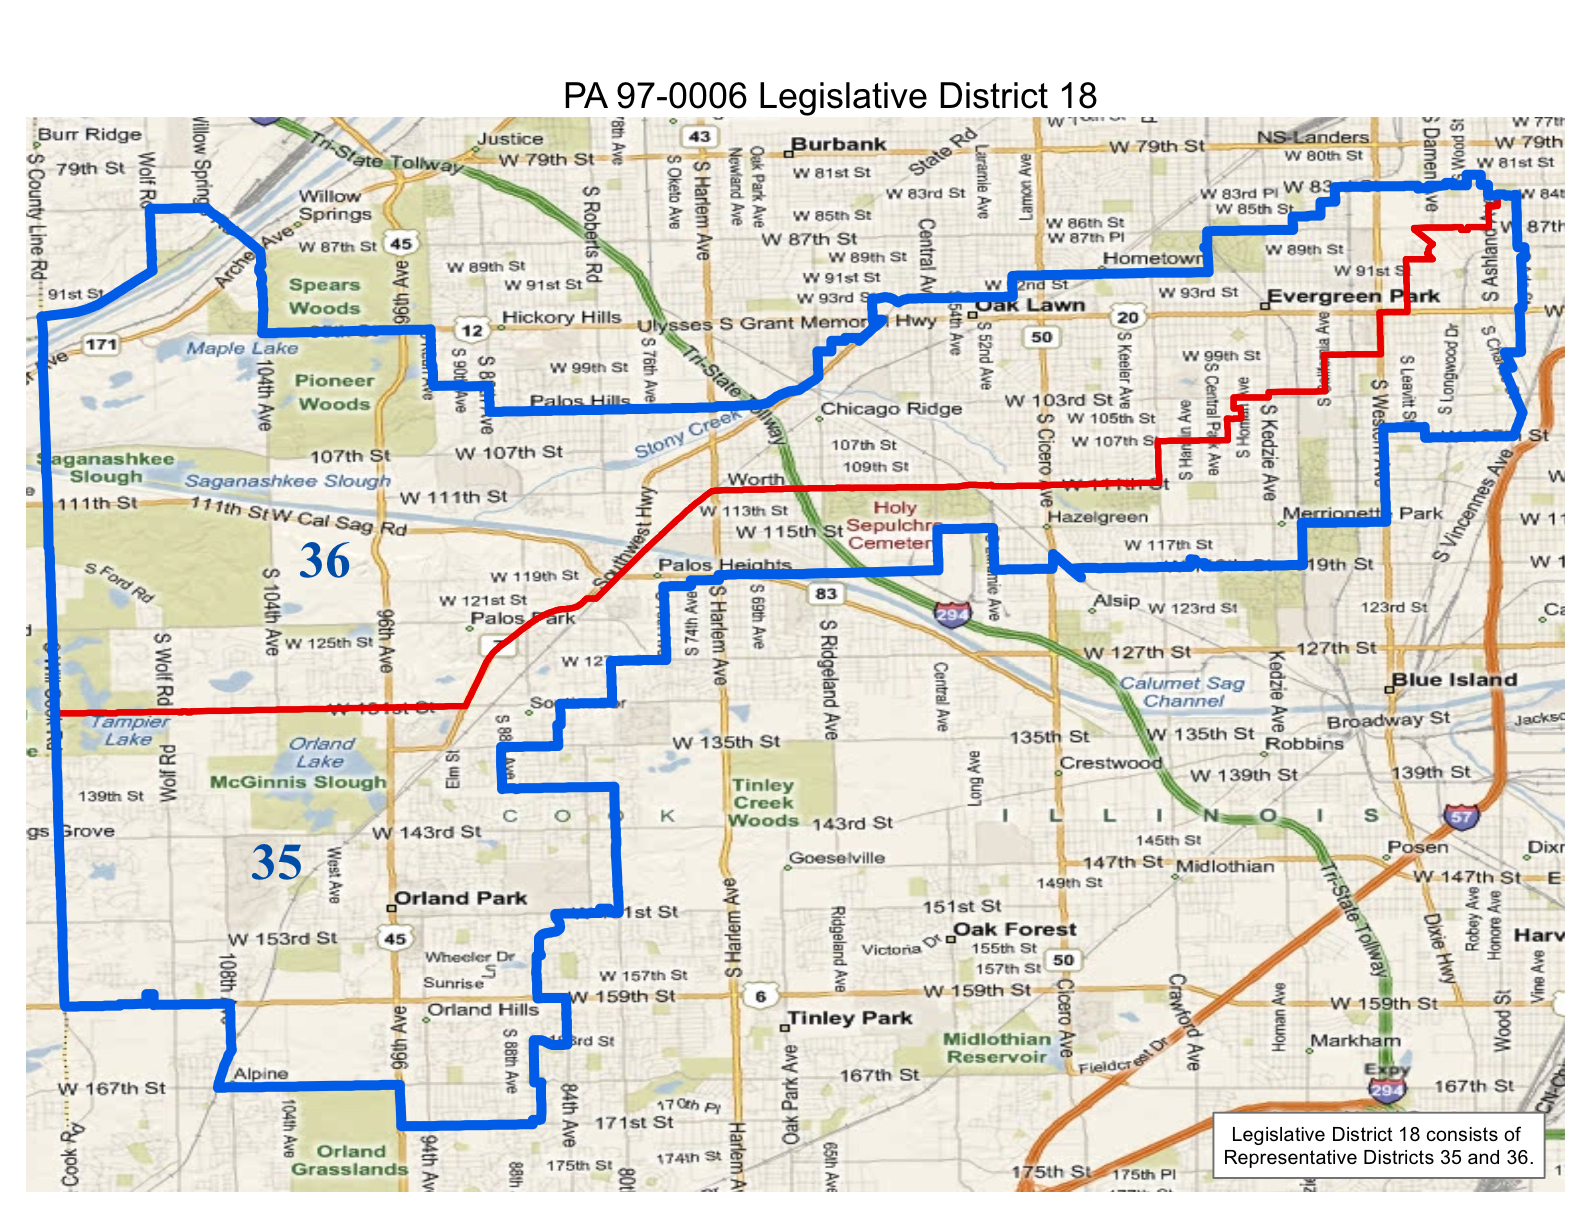 map of realigned illinois legislative district 18 and state representative districts 35 and 36